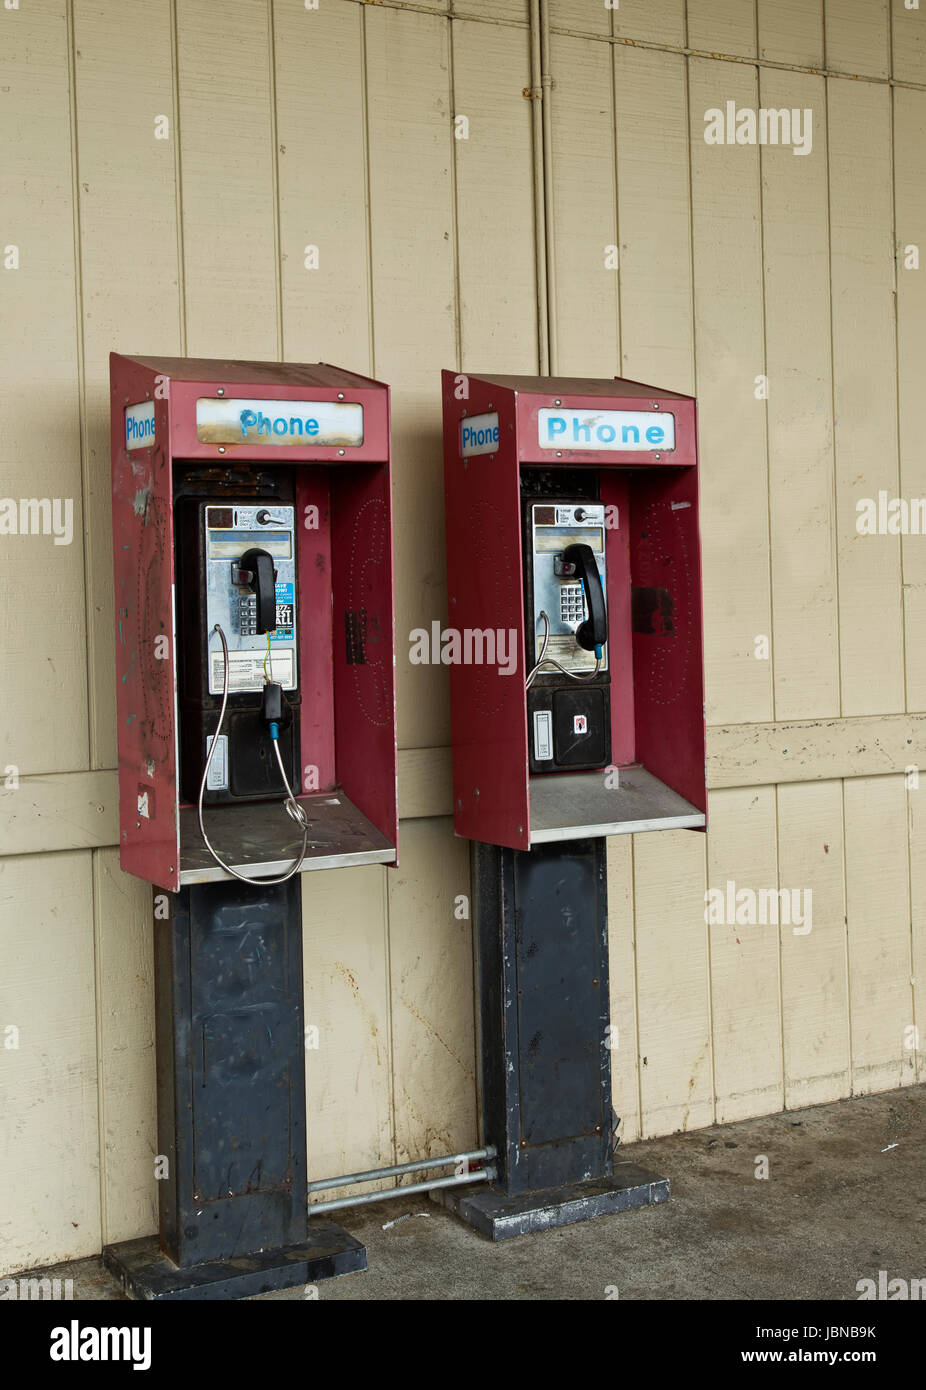 Abandoned public pay telephones with coin release slot. - Stock Image